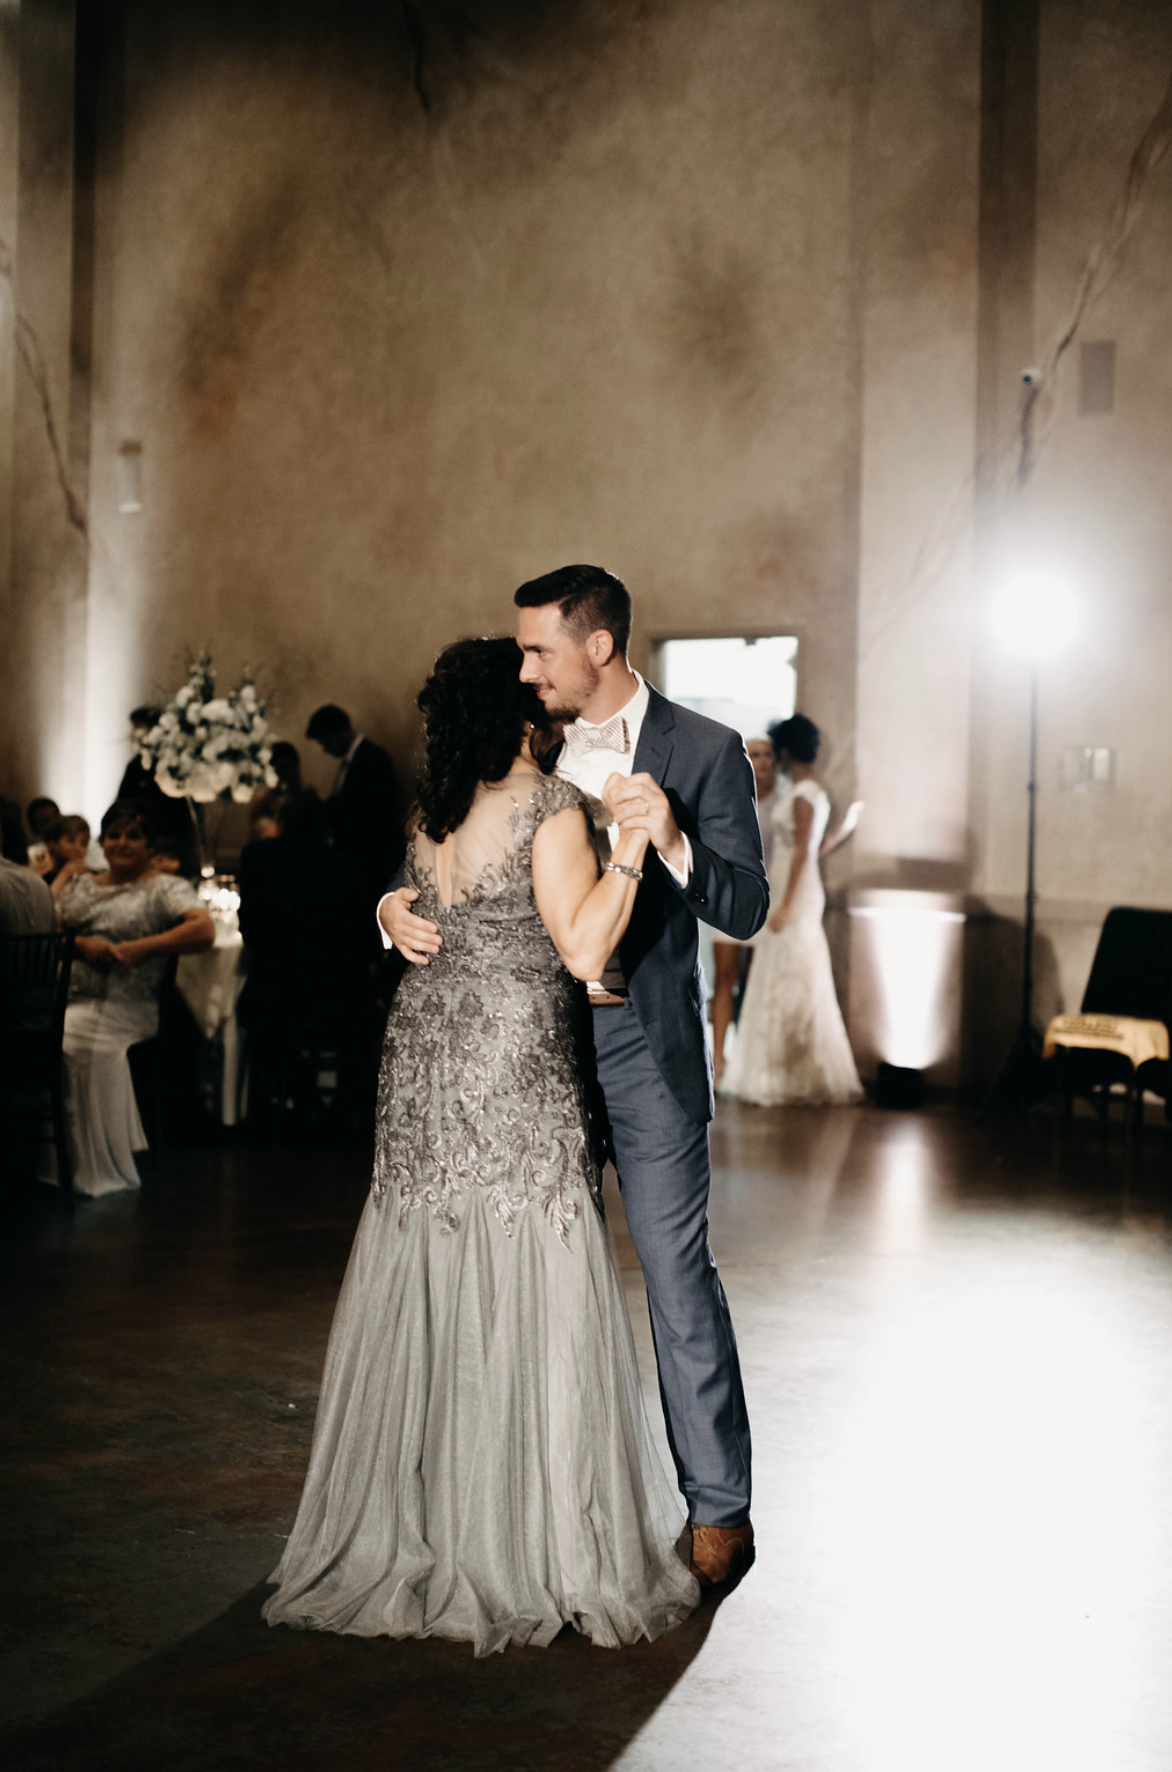 Valerie-and-TJ-McConnell-Wedding-Coordination-by-Cassandra-Clair-Event-Prep-Pittsburgh-Wedding-56.png